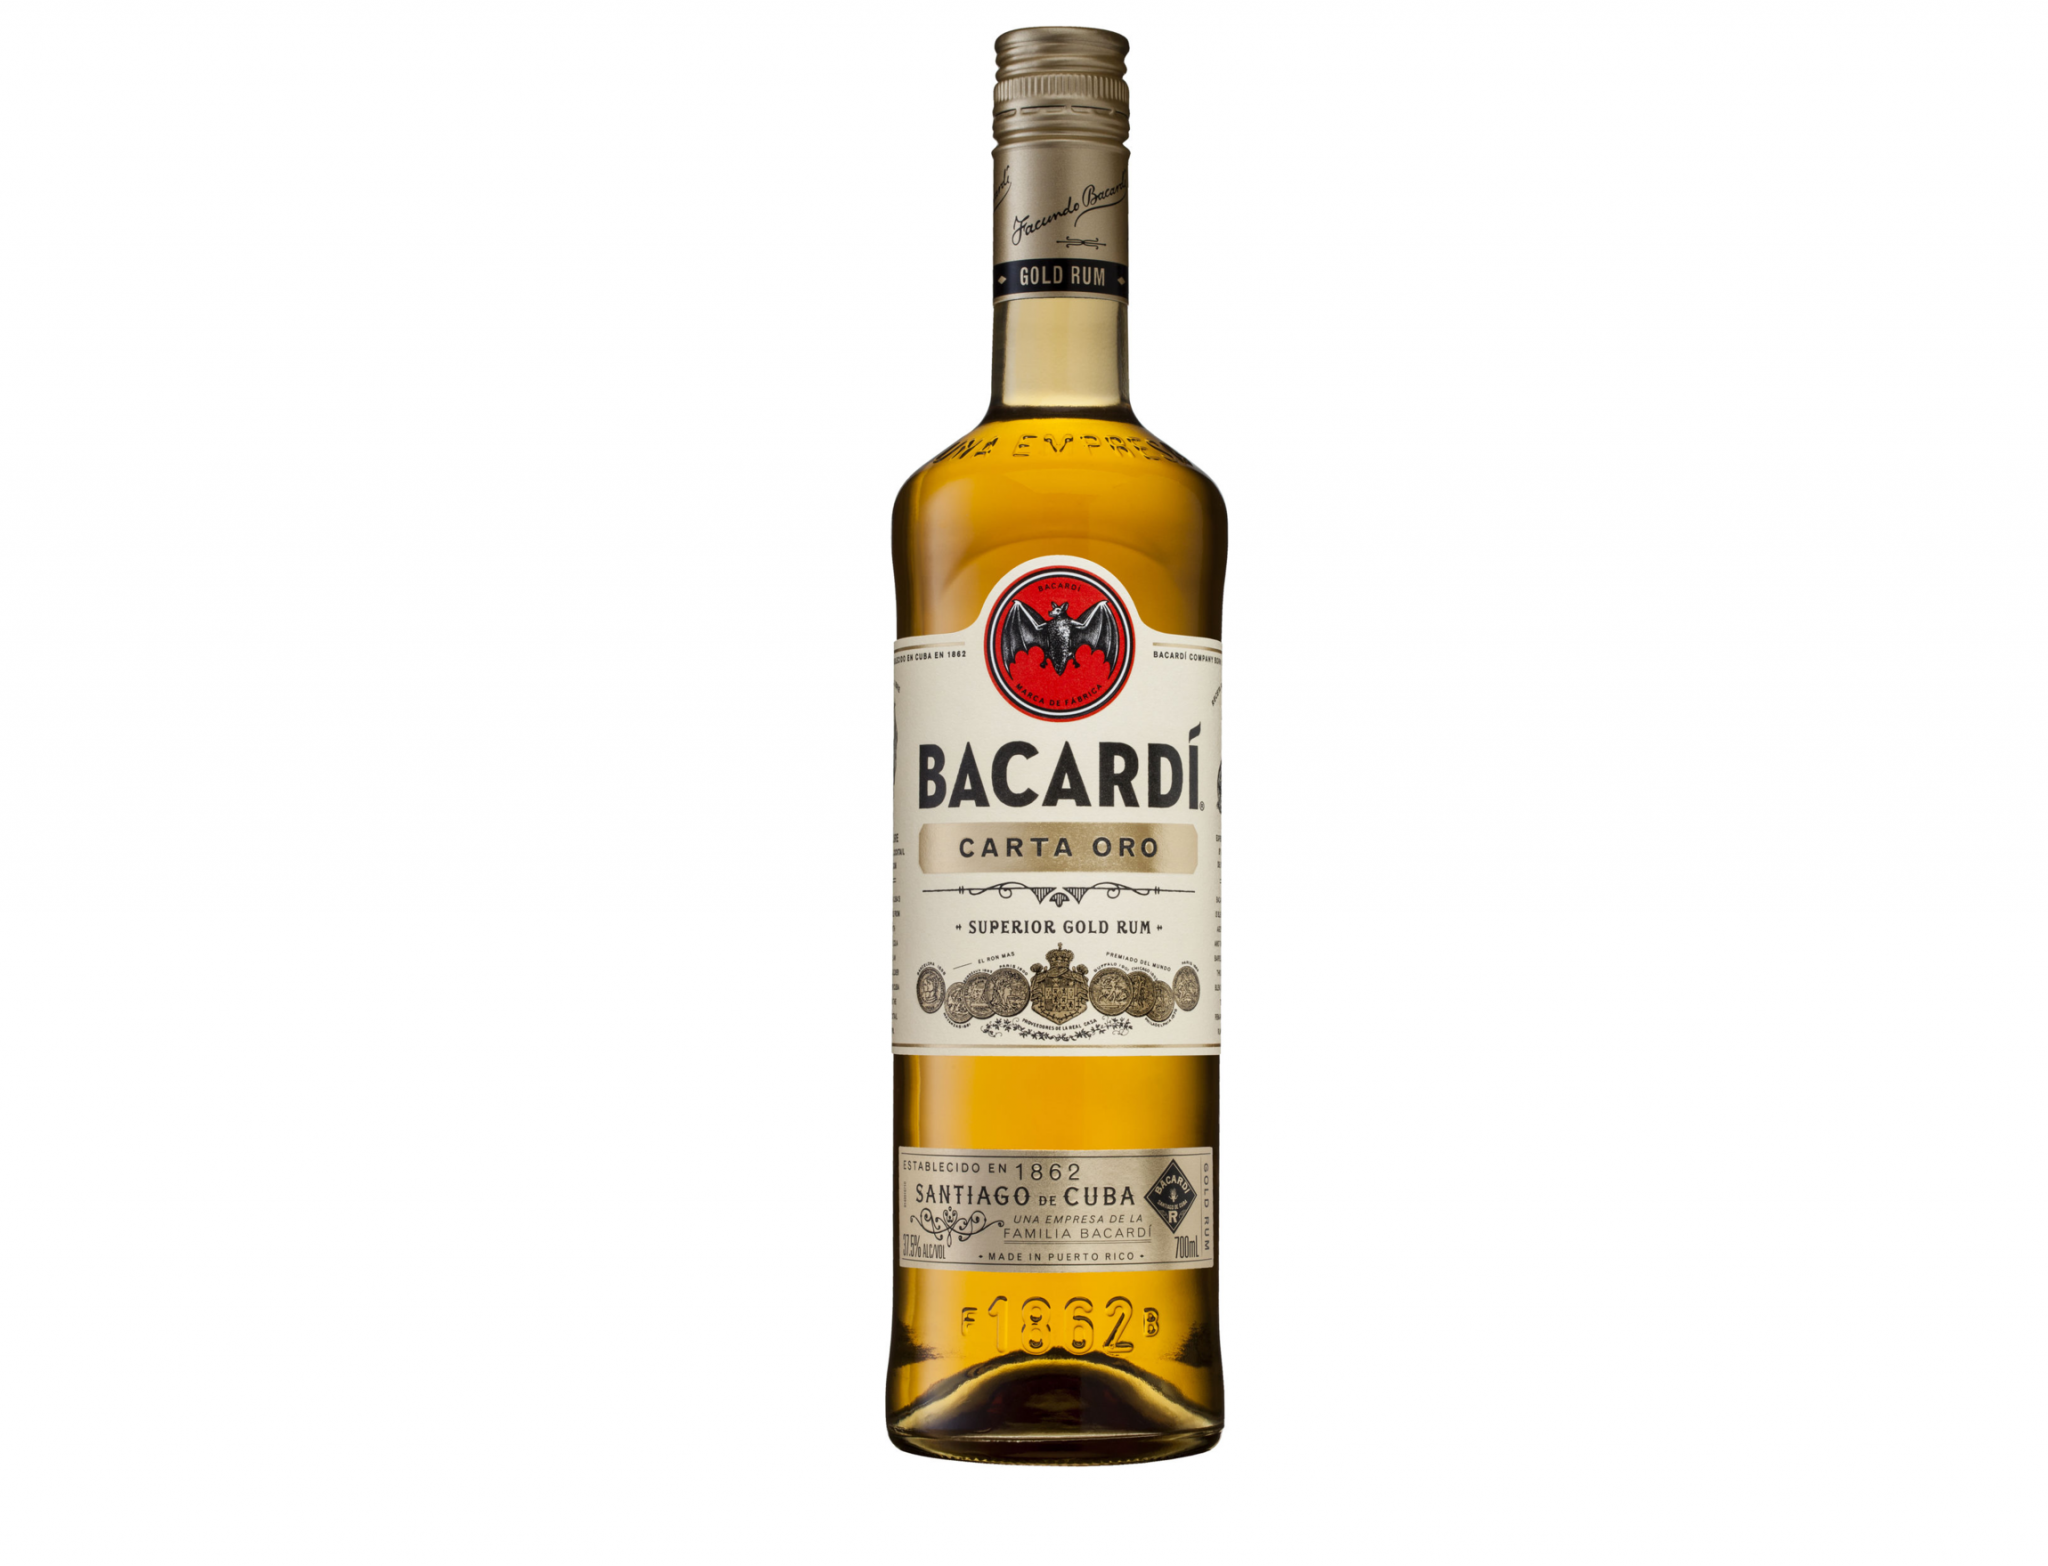 Bacardi Wallpaper Pack